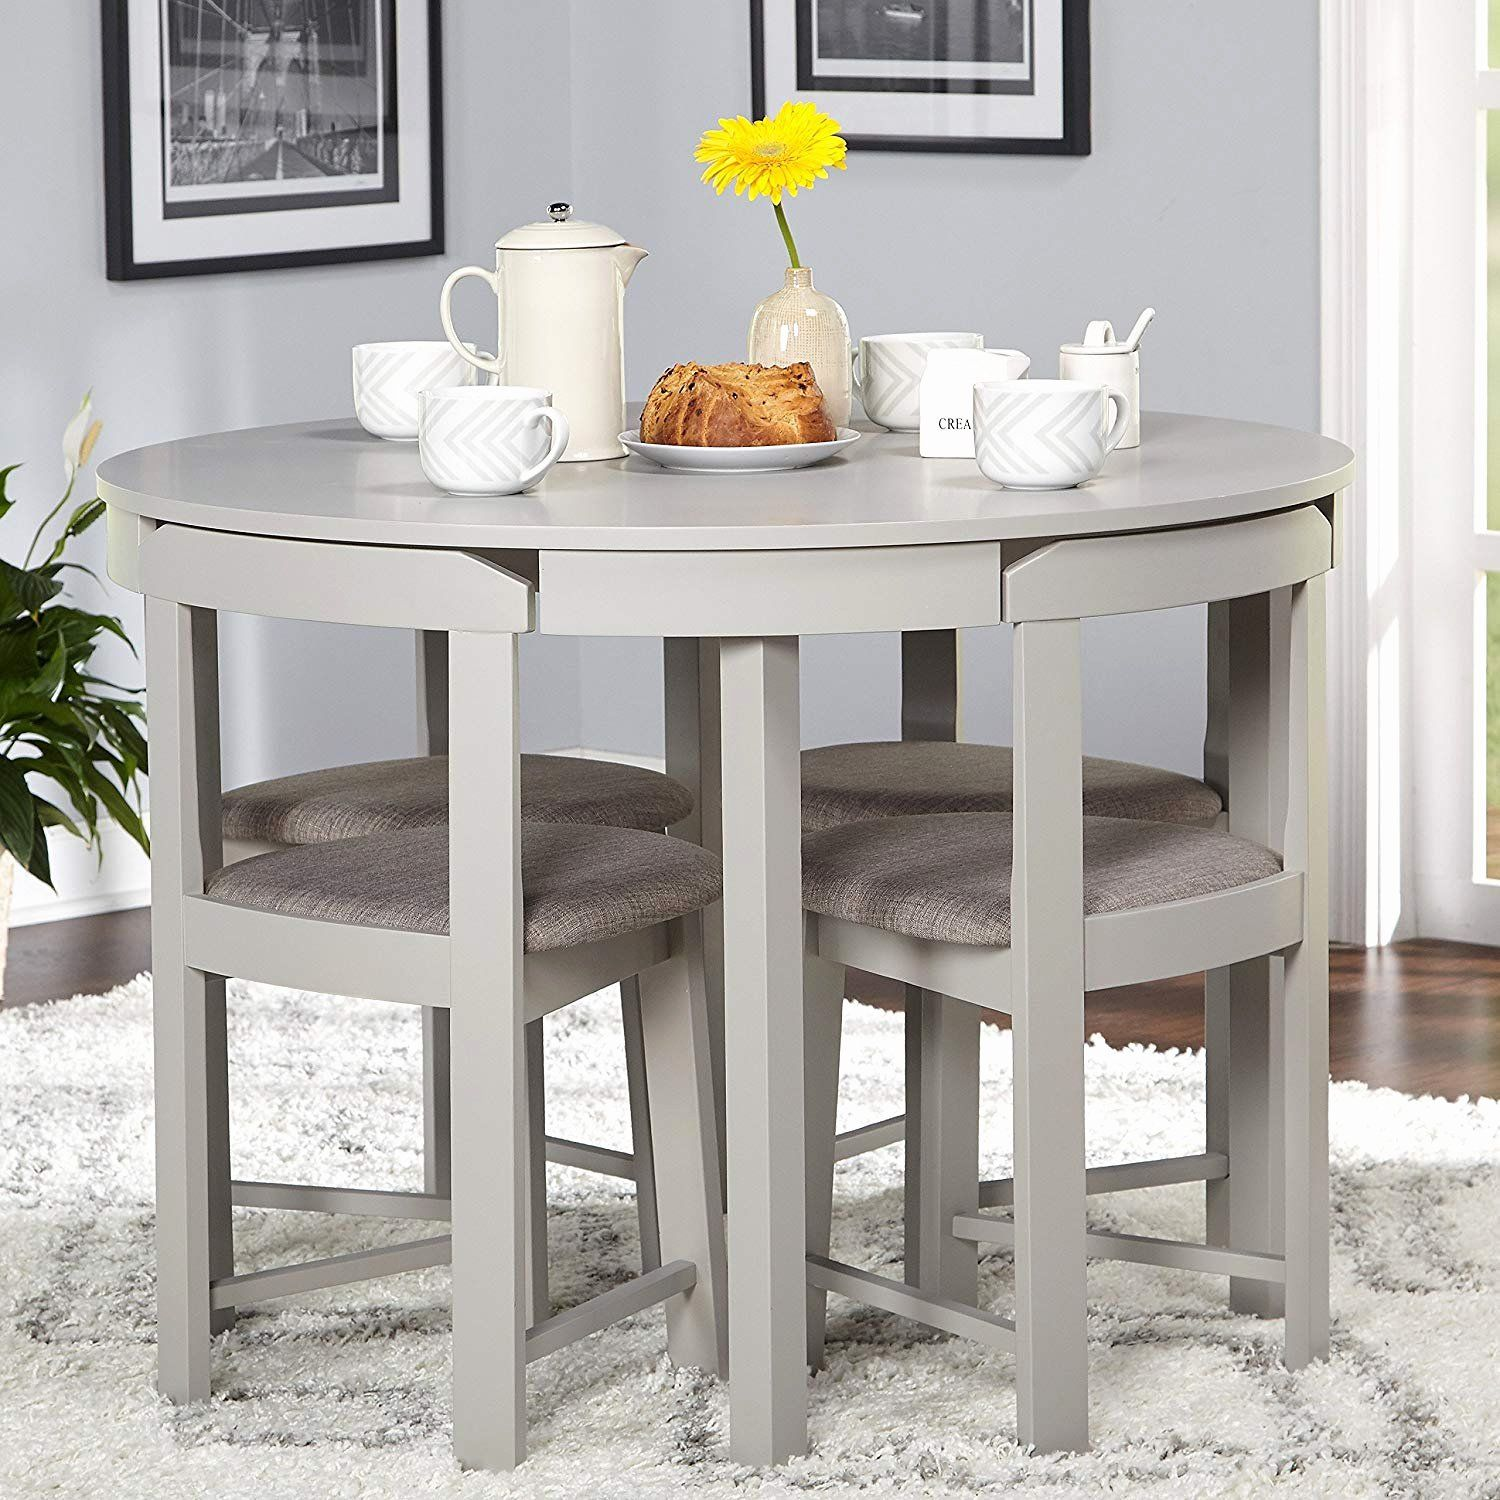 Bar Height Dining Room Sets New 5 Piece Pact Round Dining Set Home Living Room Furniture Grey Grey L In 2020 Kitchen Table Settings Round Dining Room Dining Room Small